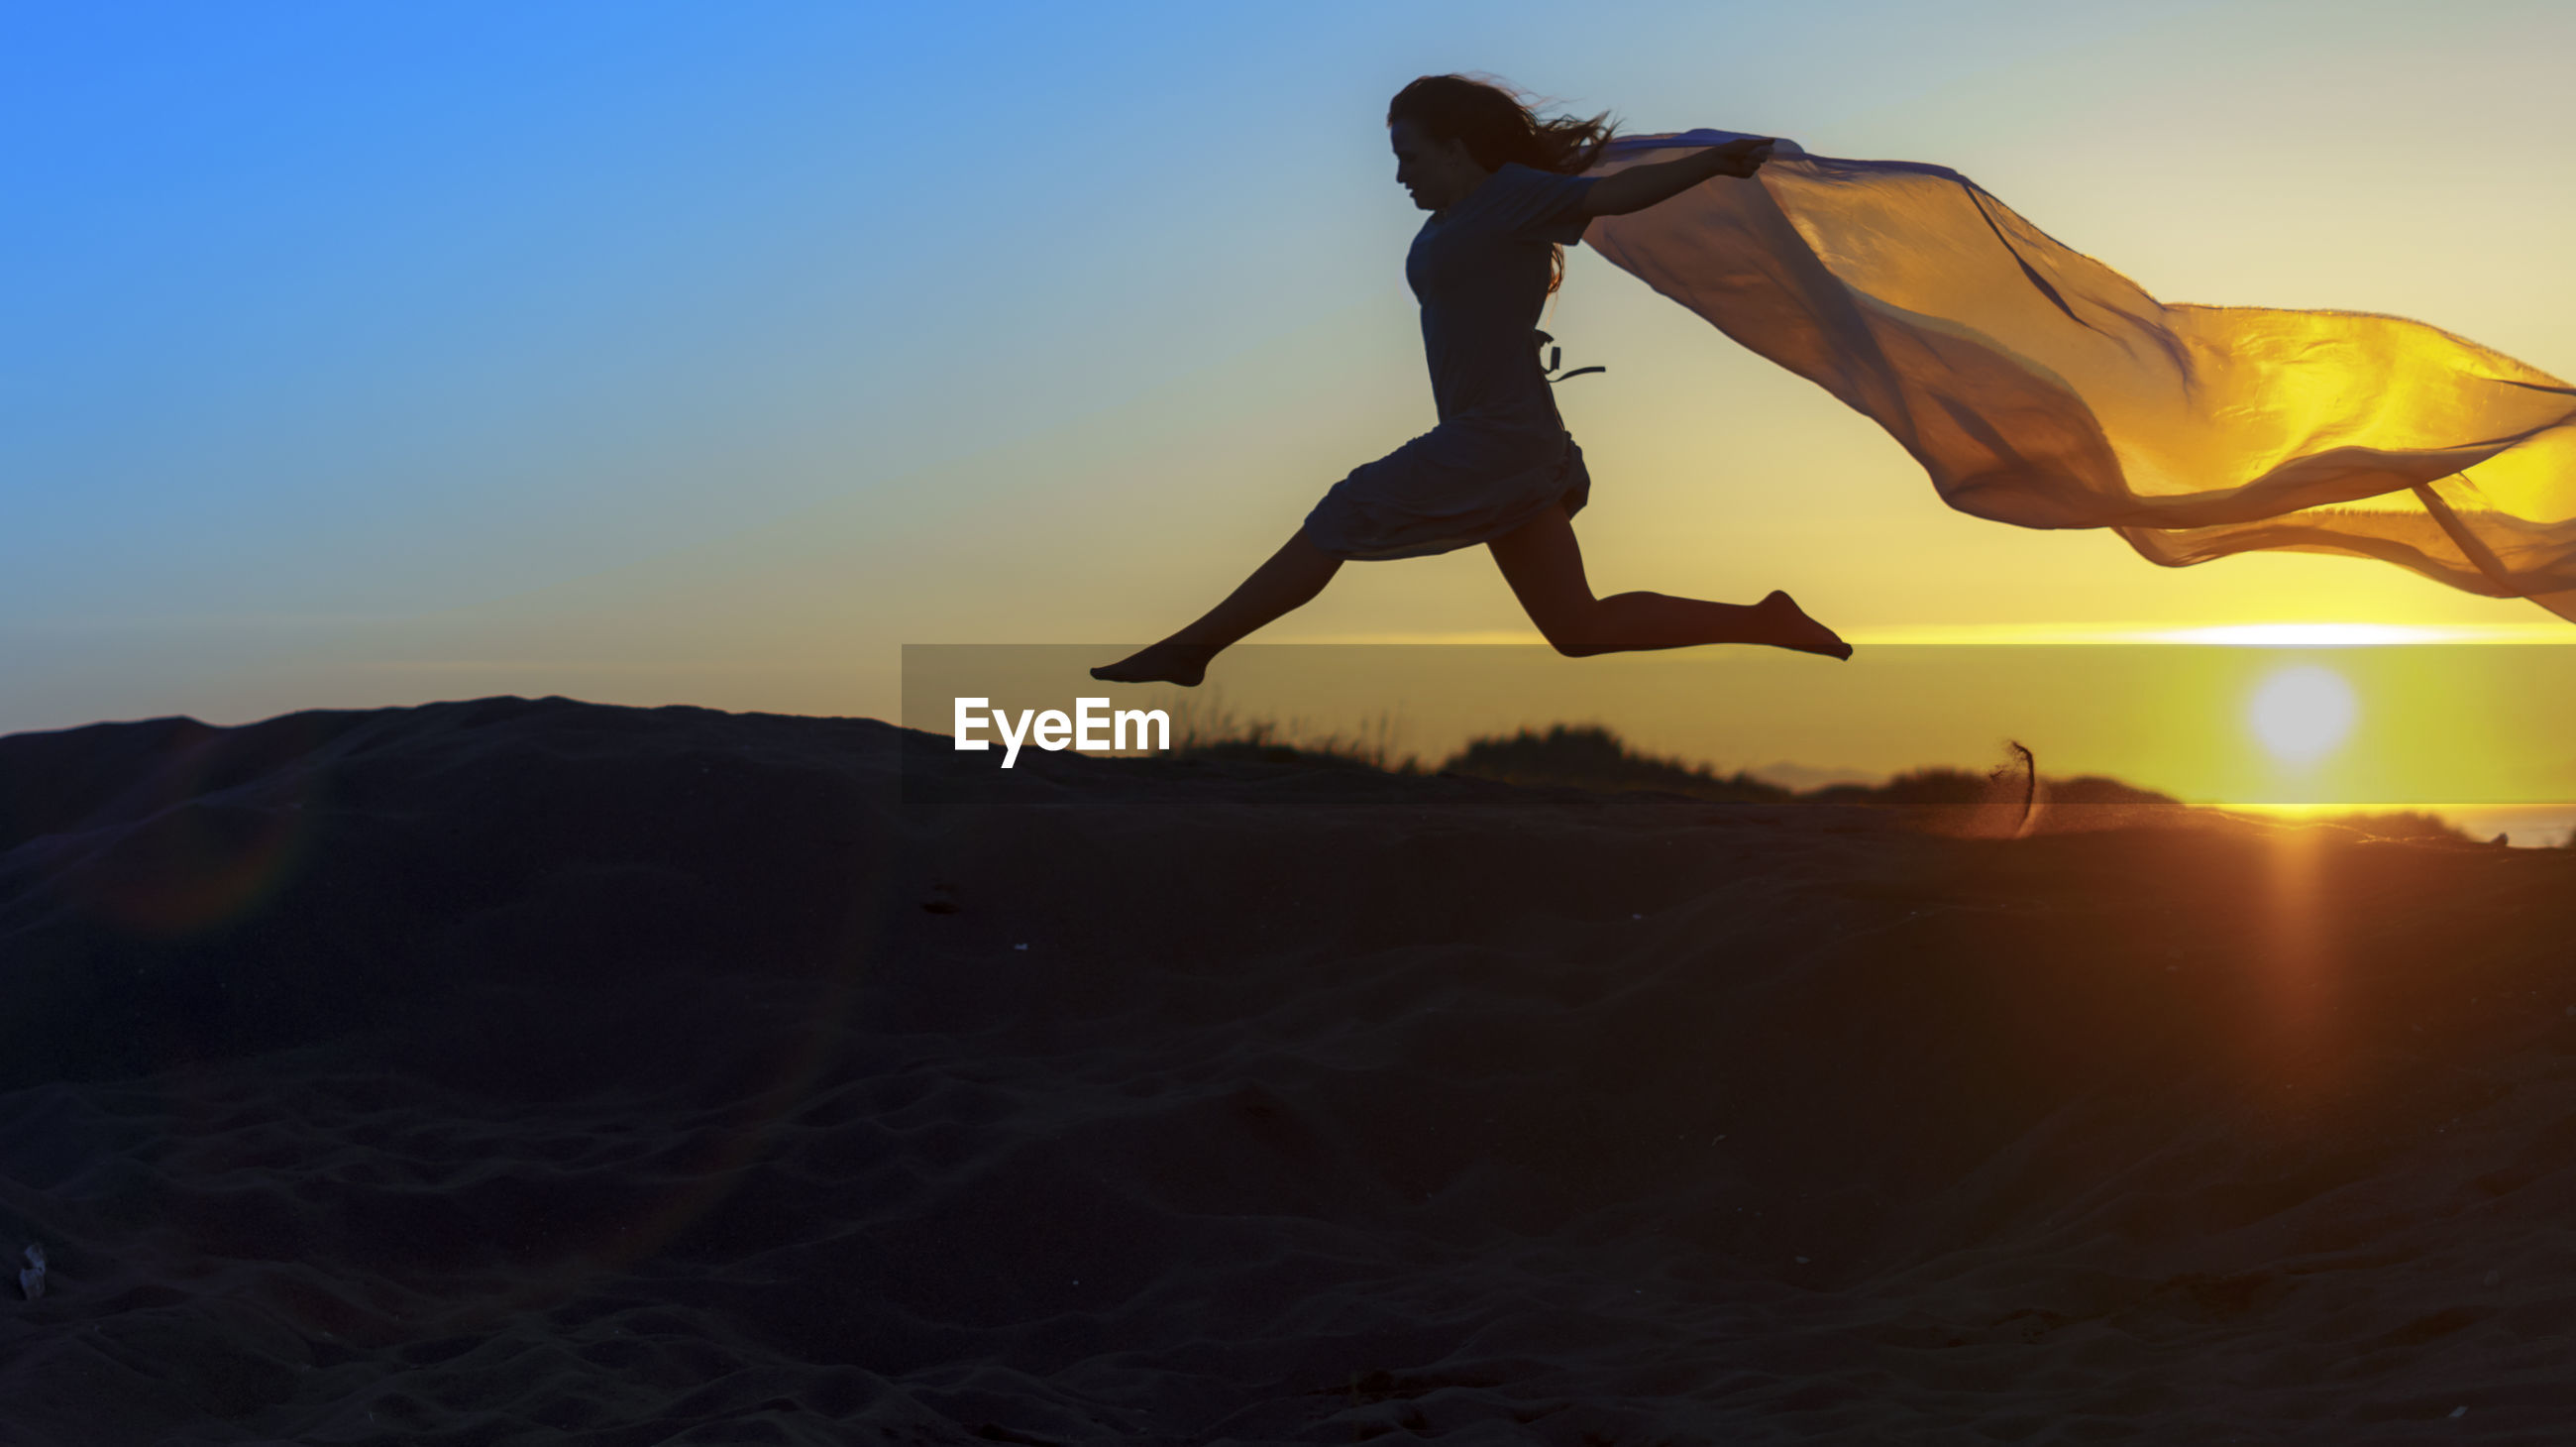 View of woman jumping at sunset